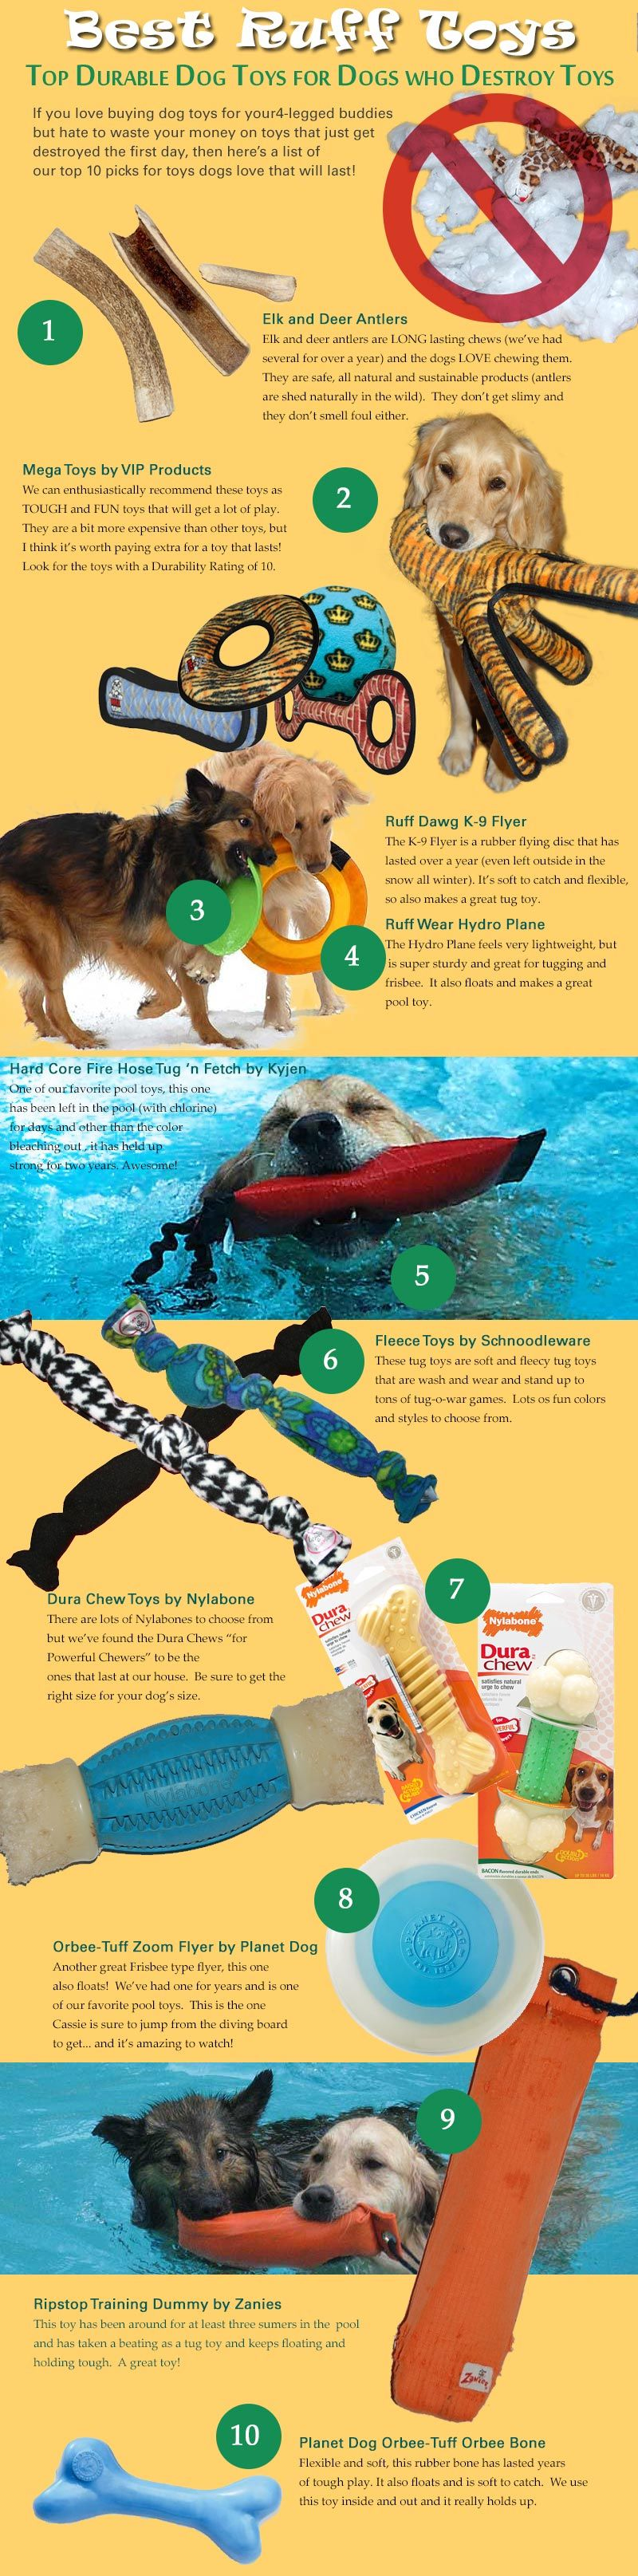 Top Ten Durable Dog Toys Infographic Ruff Toy Reviews We